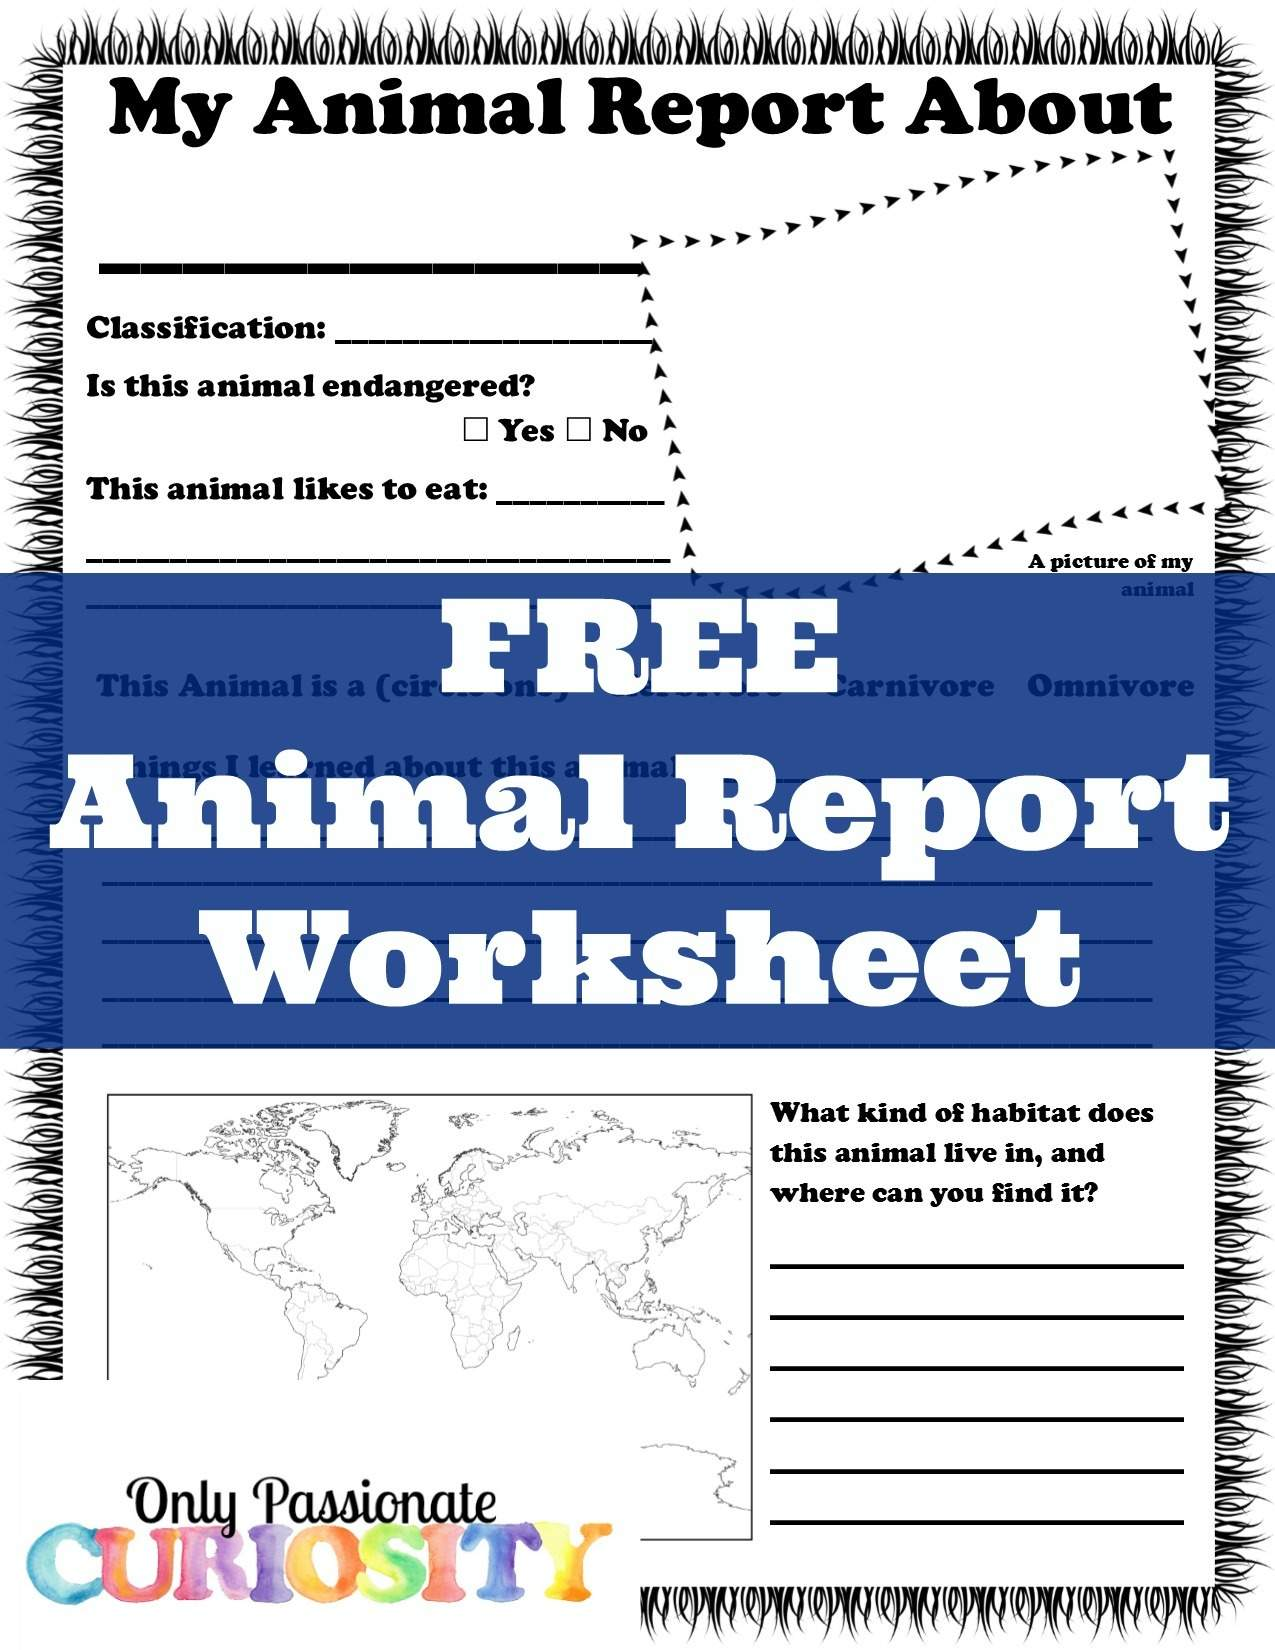 Animal Report Worksheet